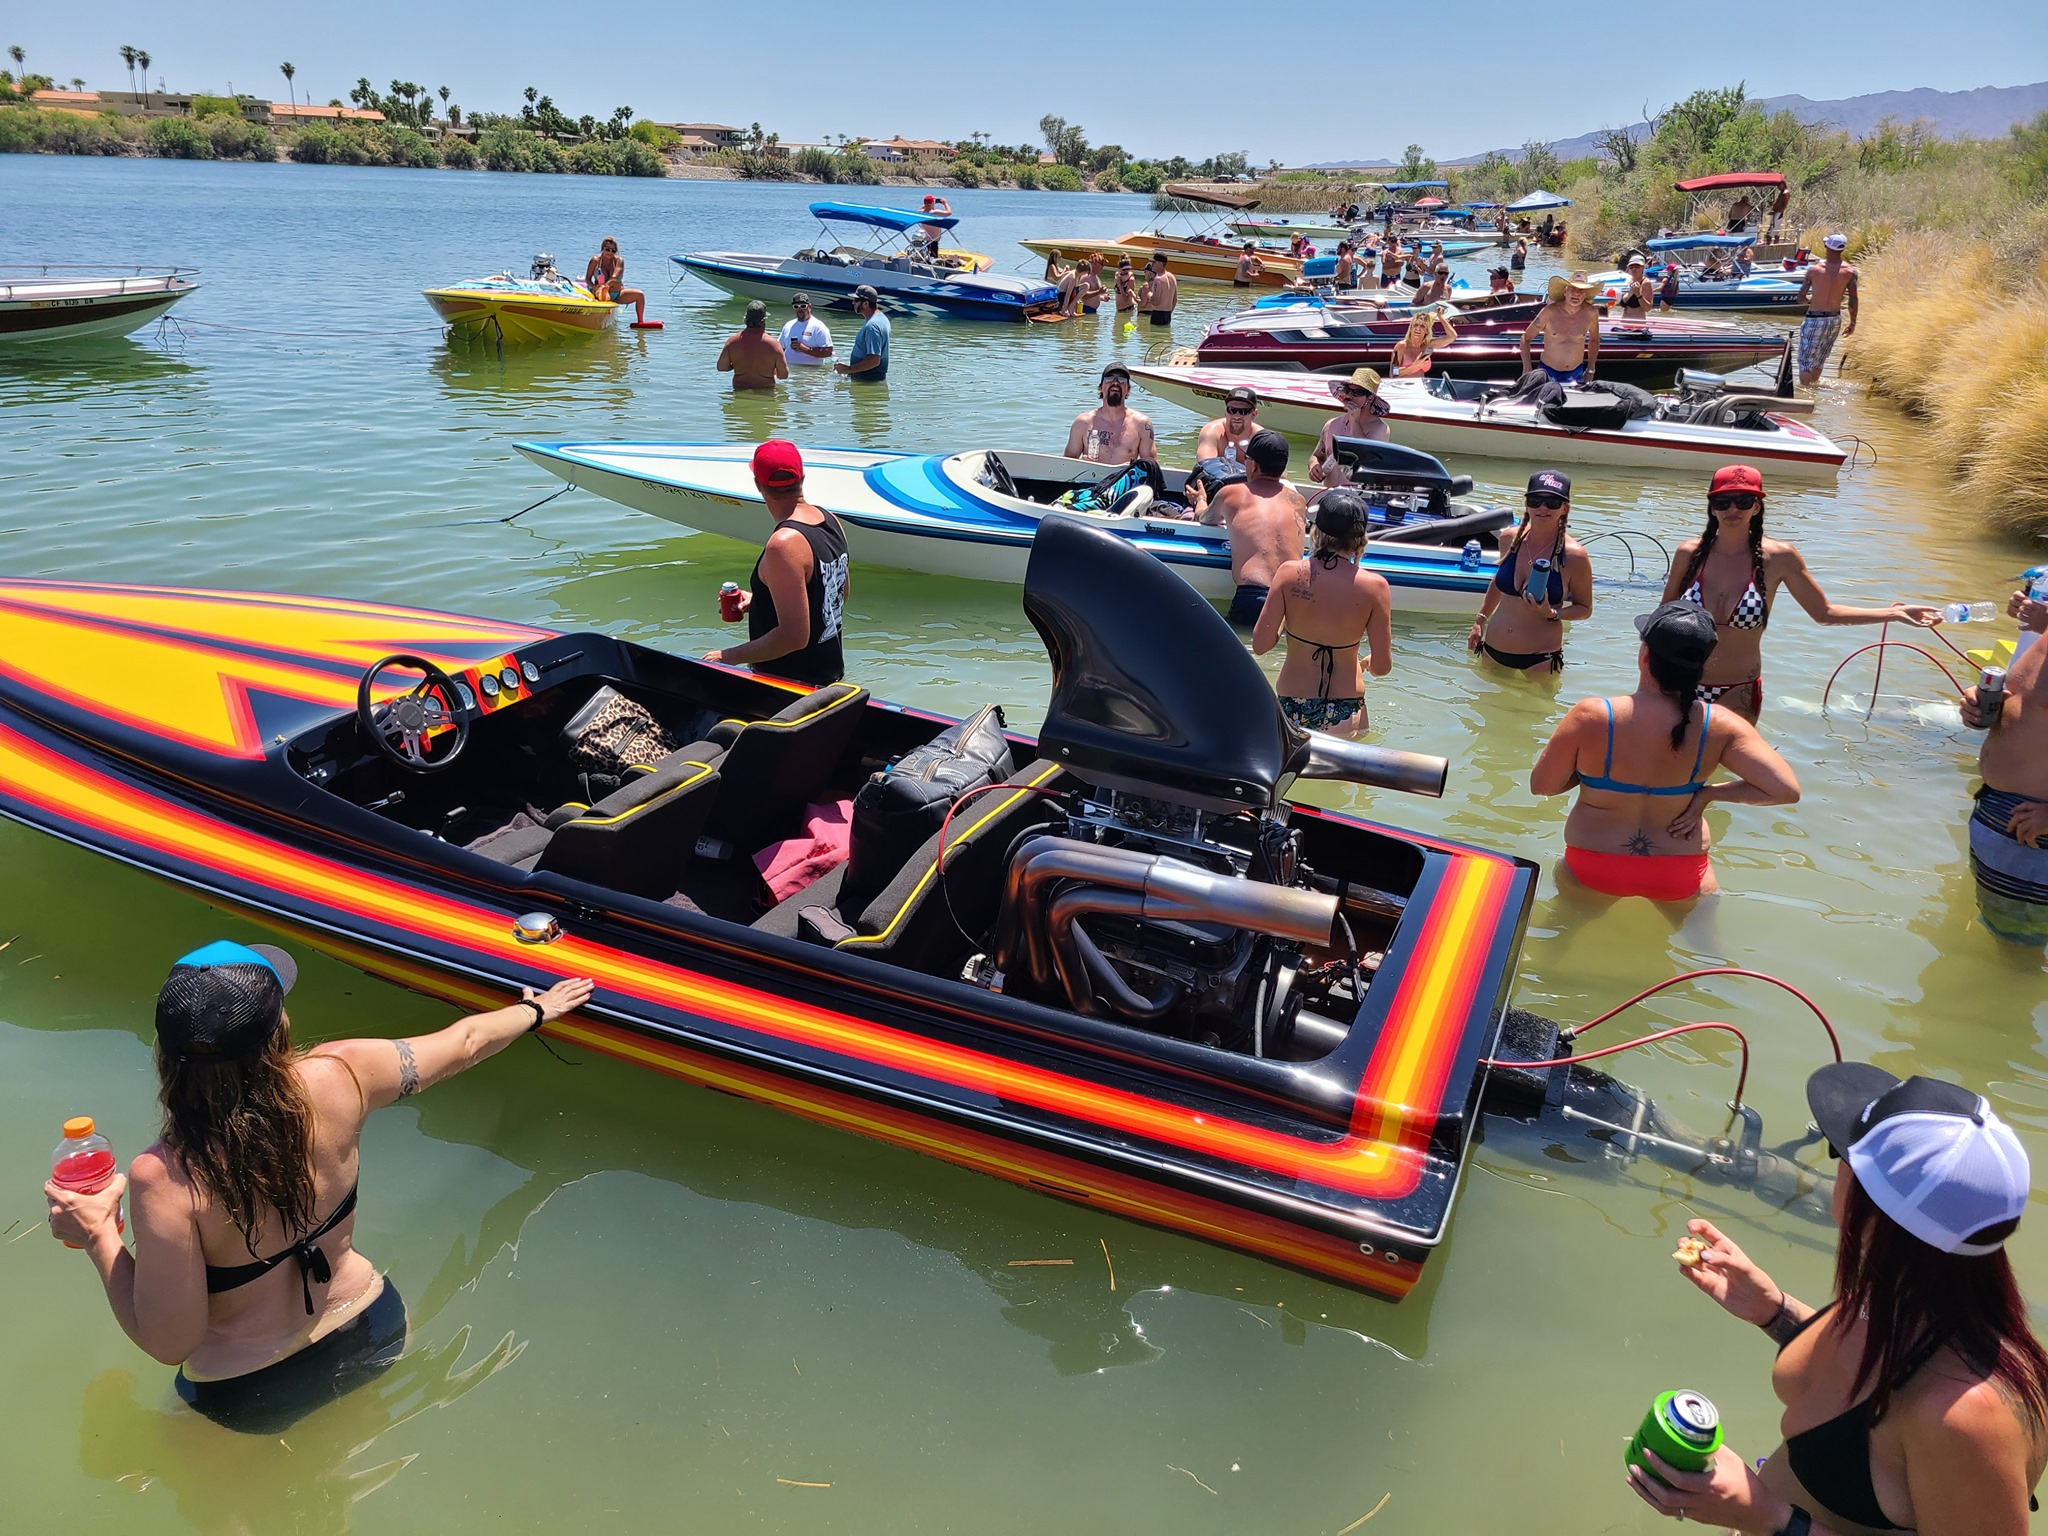 SoCal Jet Boats: One Hot Summer Weekend